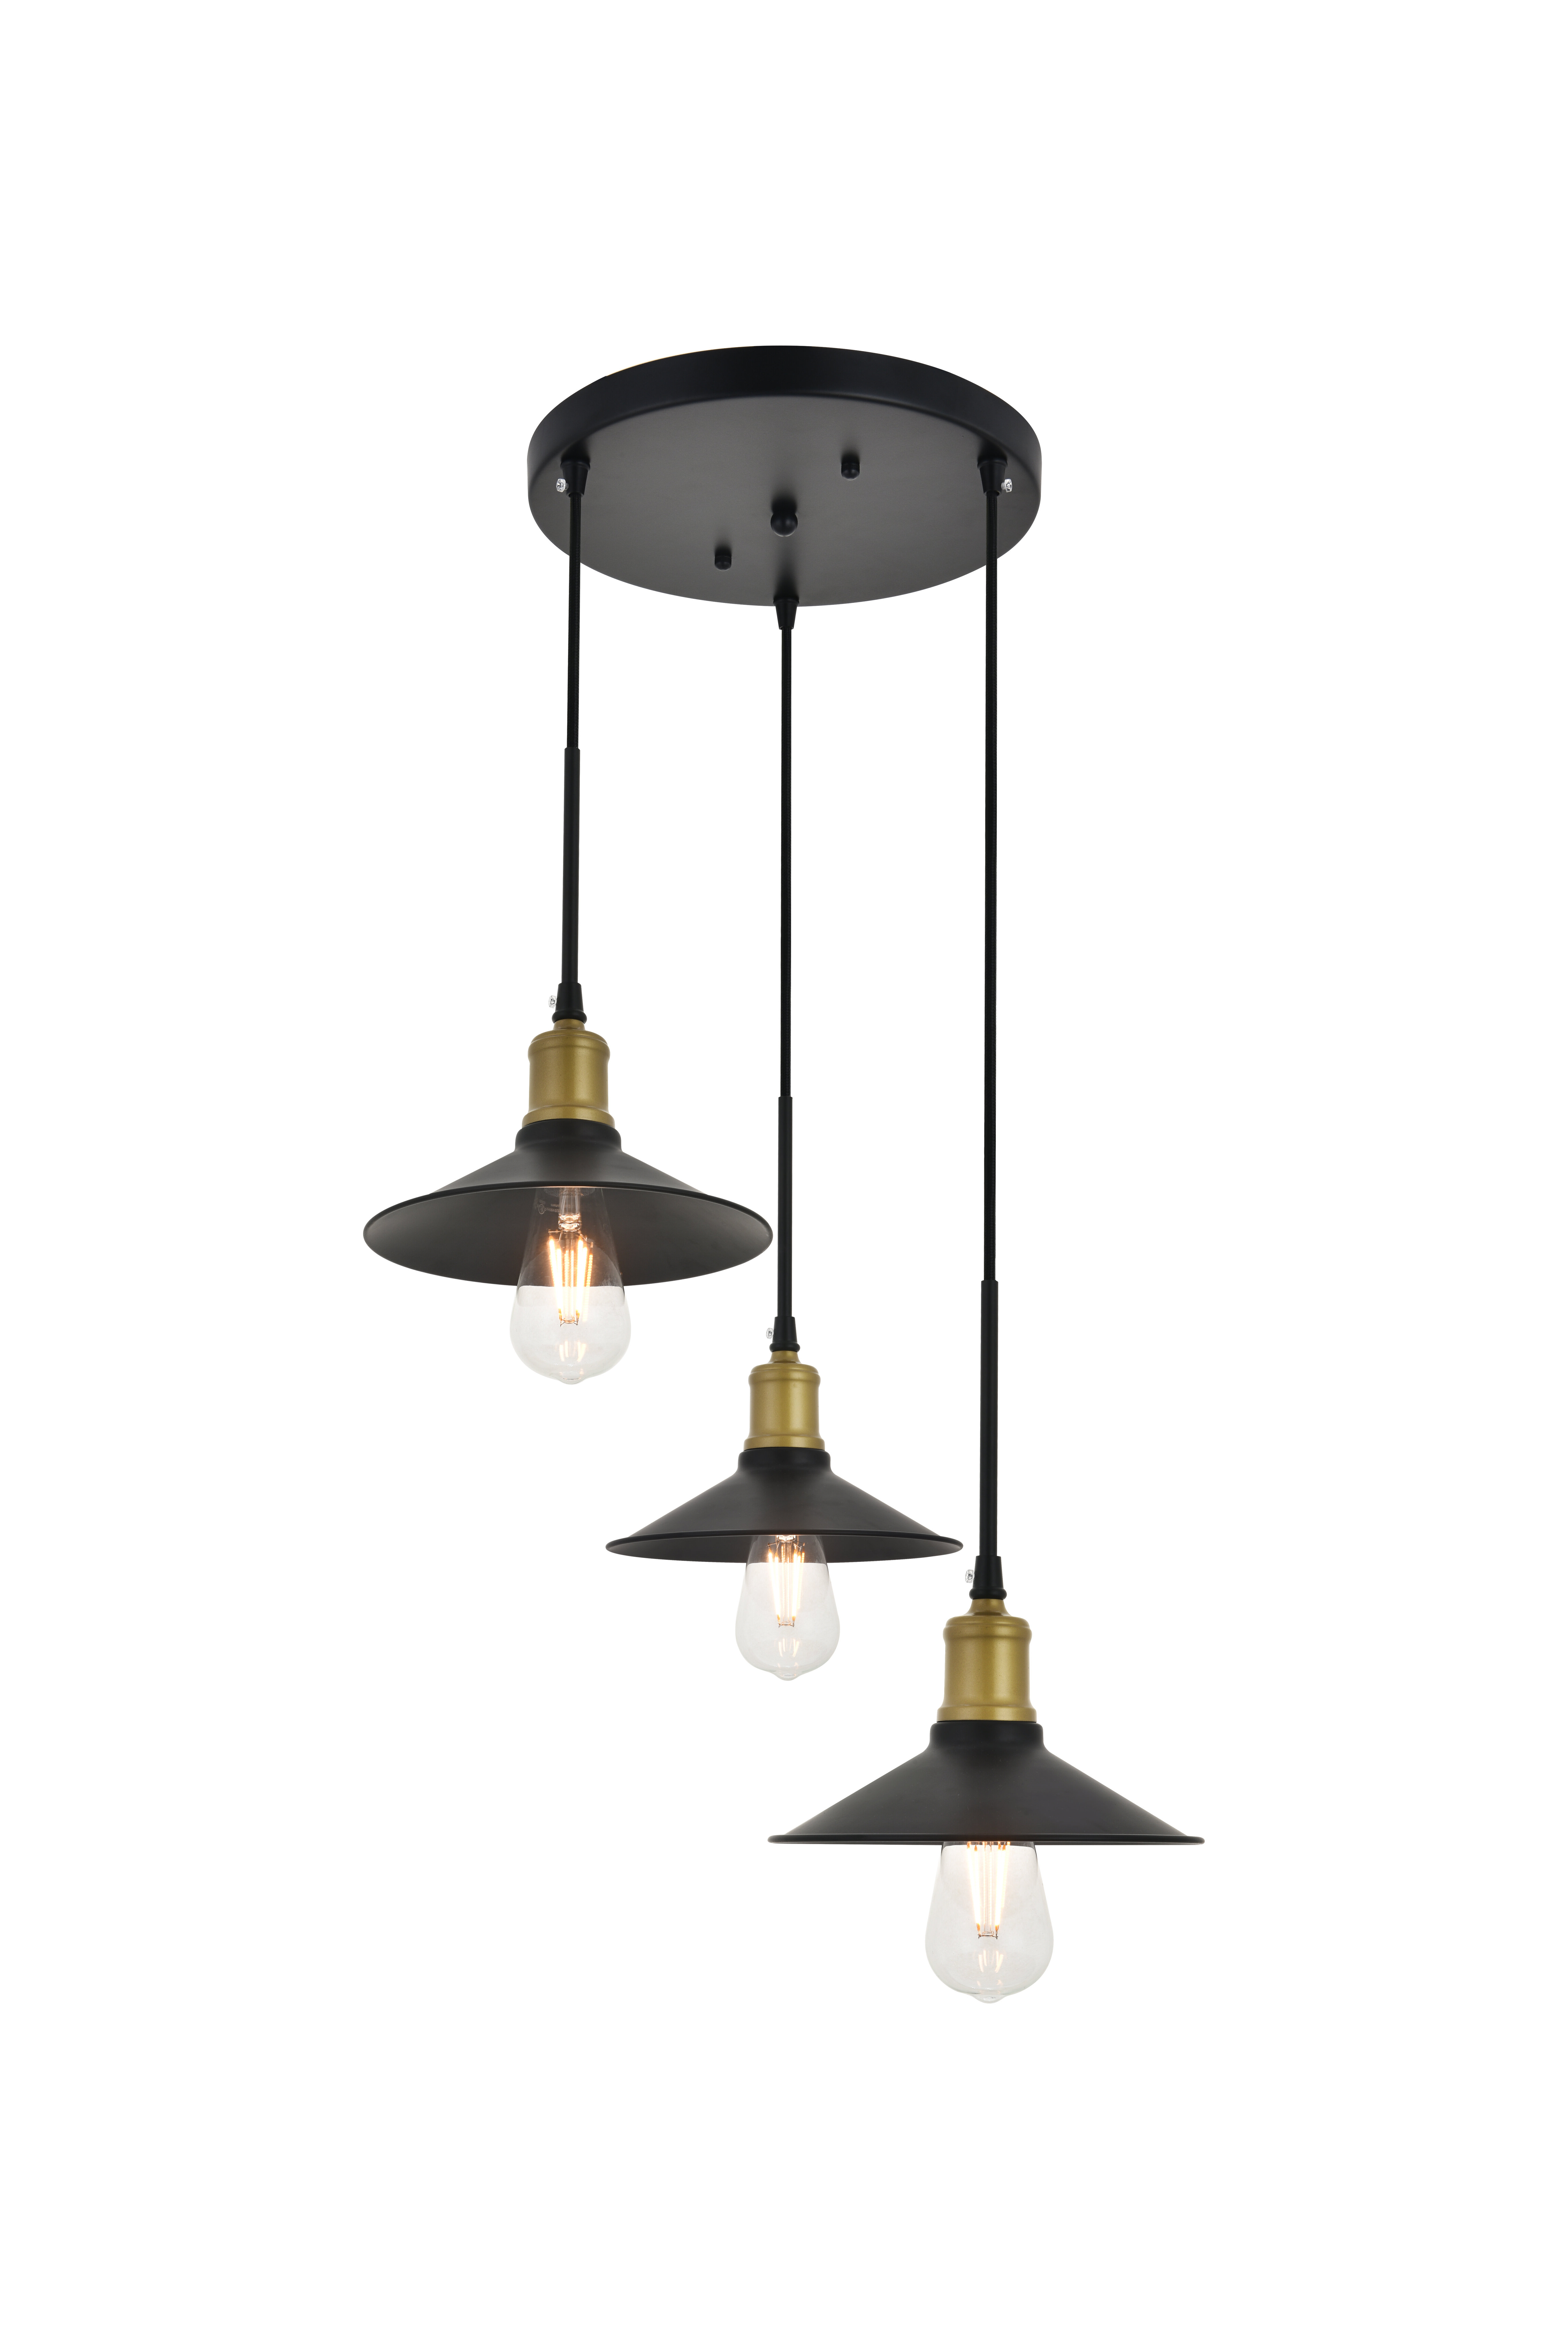 Berenice 3 Light Cluster Teardrop Pendants Throughout Well Known Dellwood 3 Light Cluster Pendant (View 7 of 20)